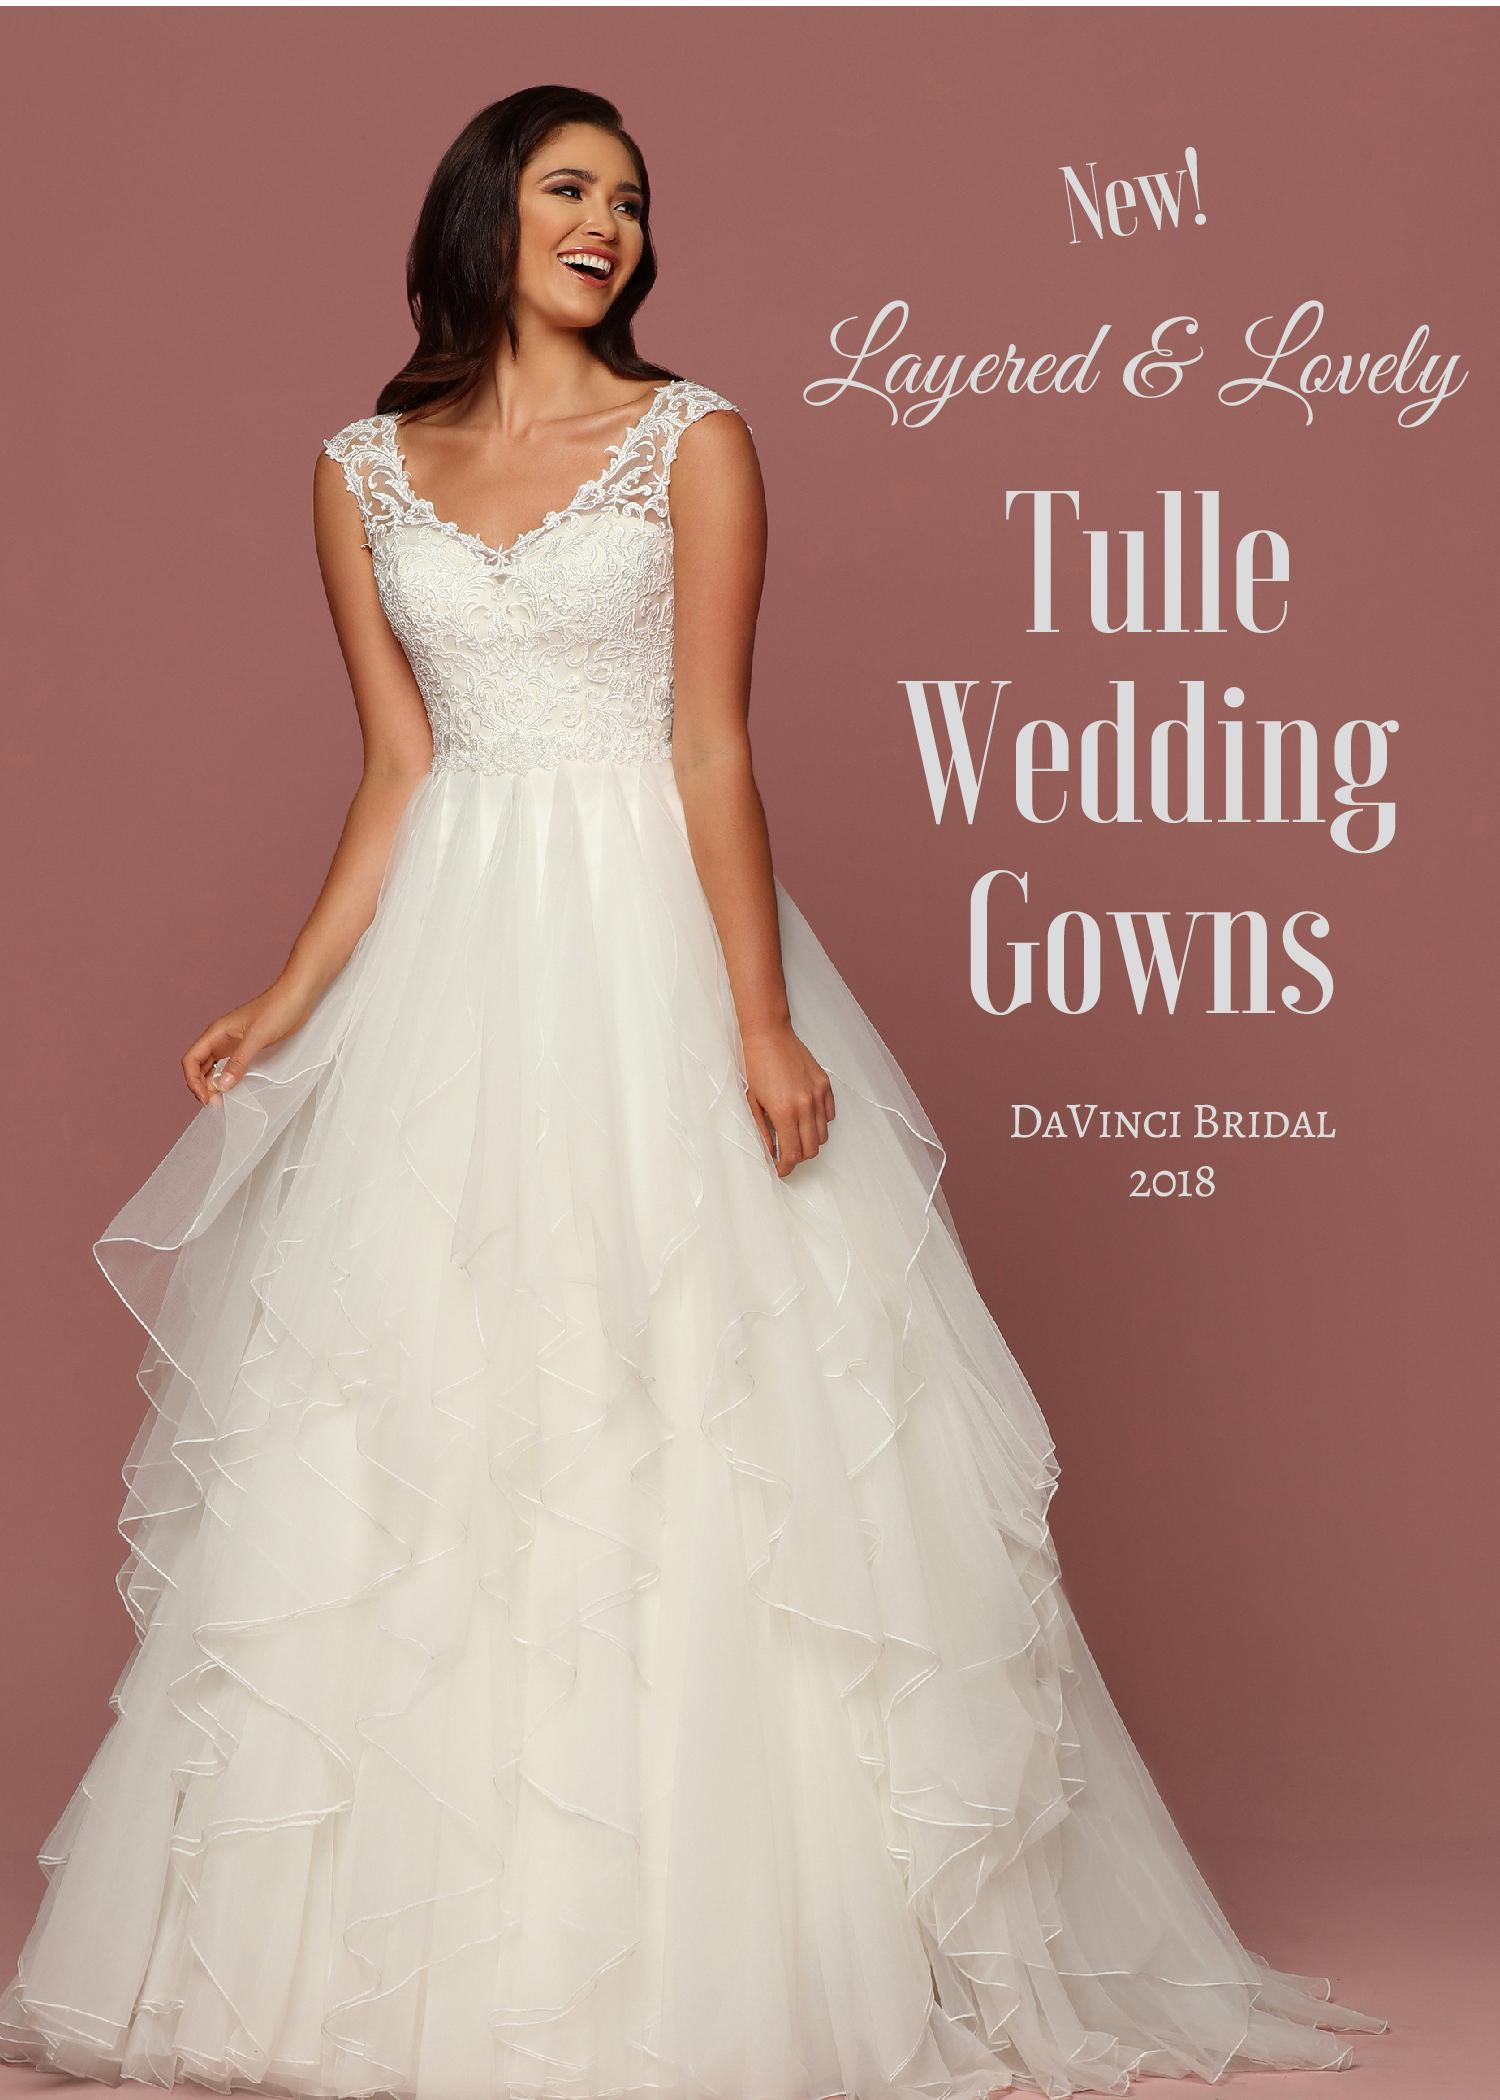 Layered & Lovely: Tulle Wedding Gowns for 2018 - DaVinci Bridal Blog